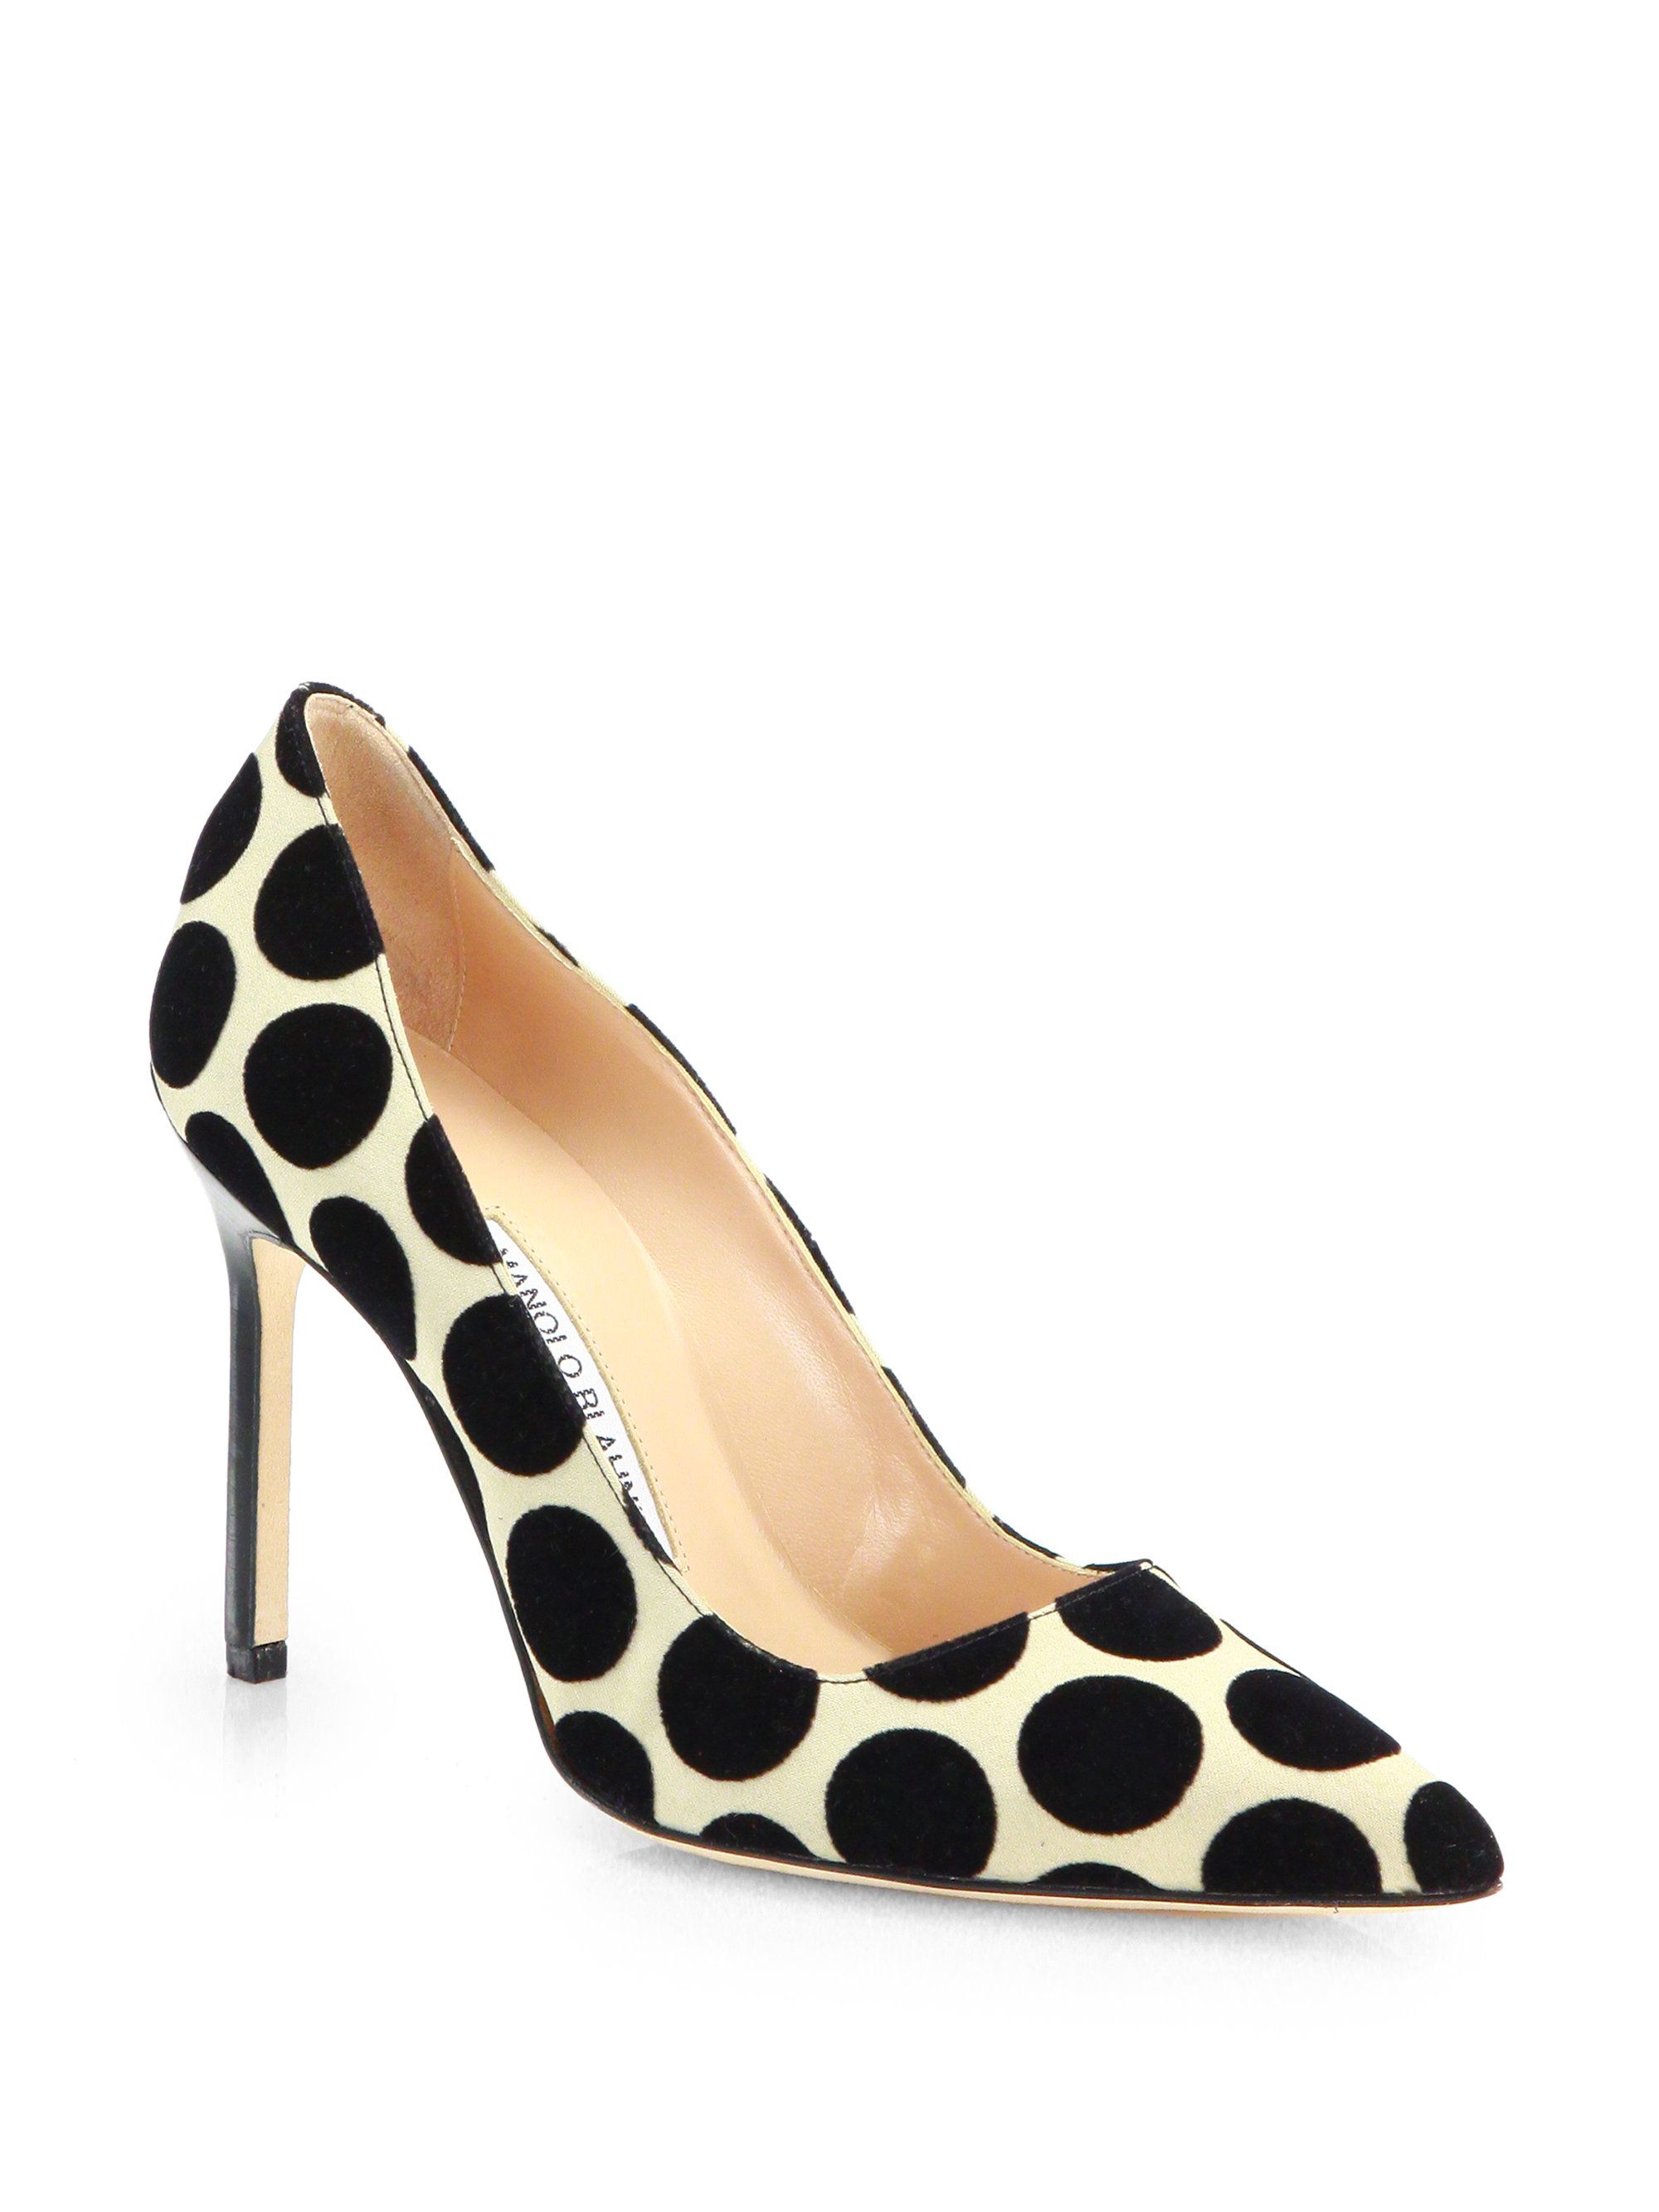 Lyst Manolo Blahnik Satin Suede Polka Dot Pointtoe Pumps